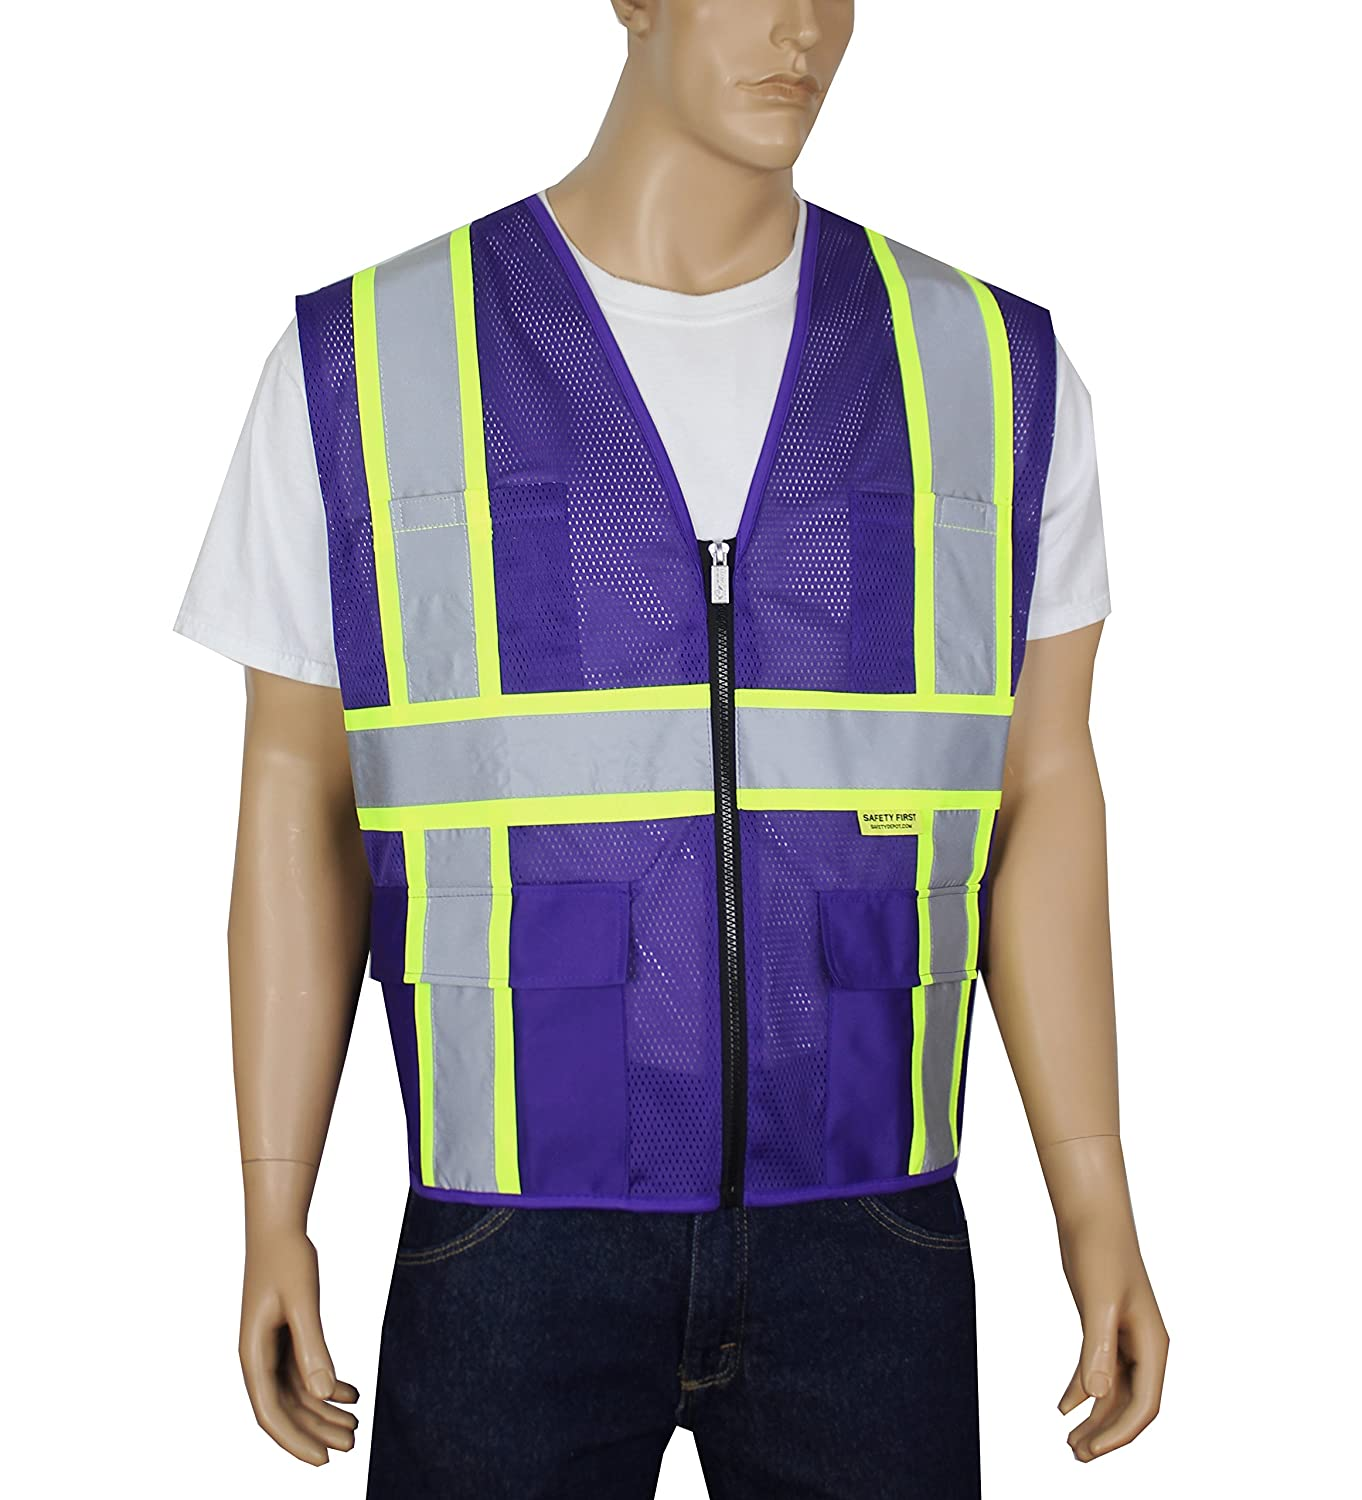 Safety Depot Class 2 ANSI Approved Safety Vest 4 Lower Pockets, 2 Chest Pockets with Pen Divider & High Visibility Reflective Tape 7048A (Lime Yellow, 4XL) 2W